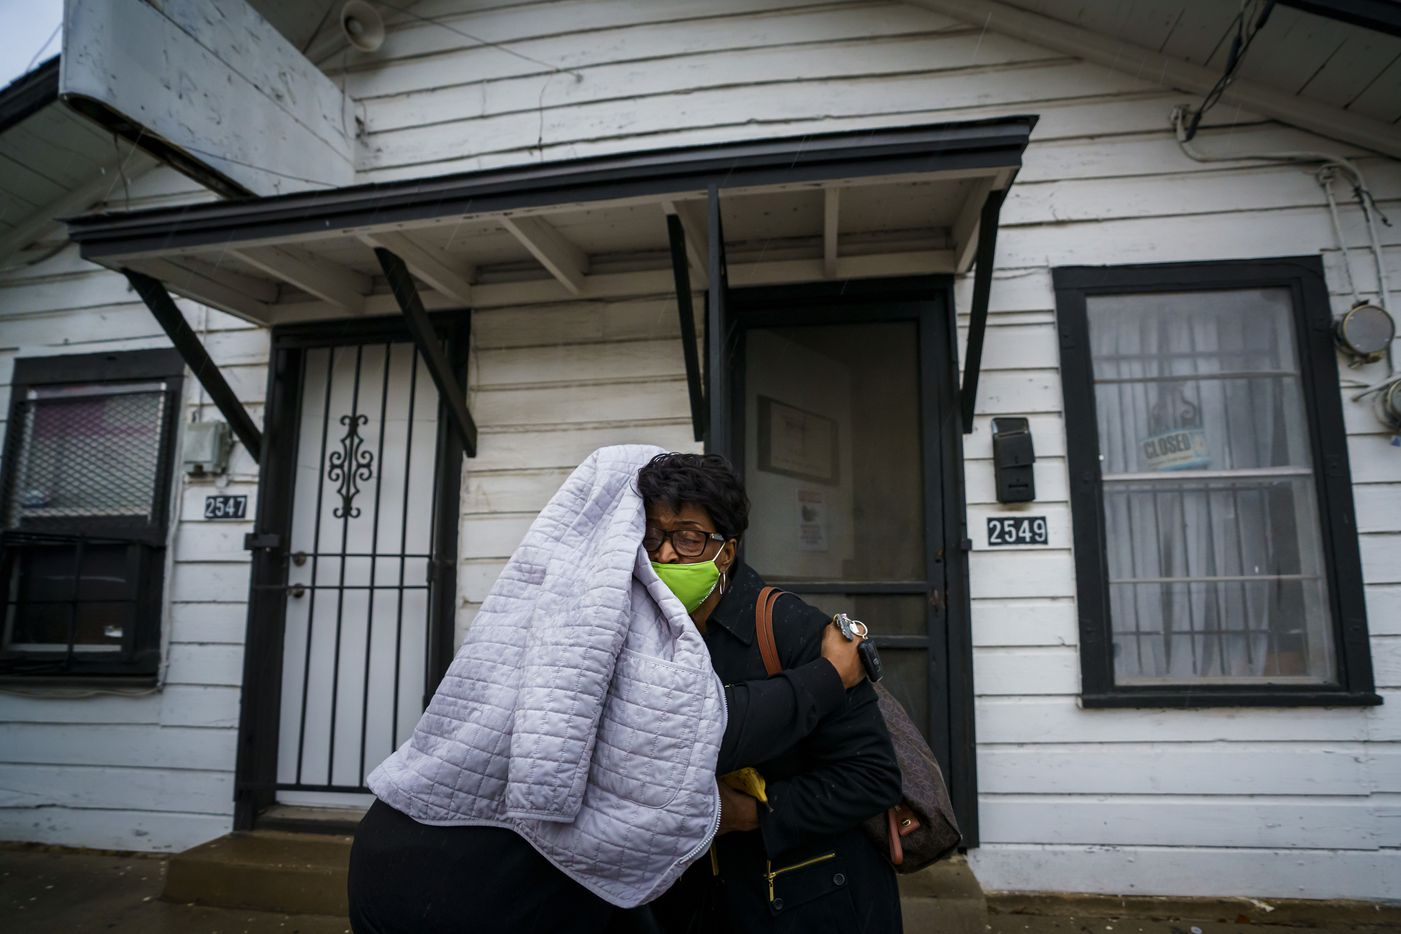 Earnestine Tarrant gets a hug from client Altha Hearne, who wears her jacket over her head to protect her hair from the rain, after Hearne was Tarrant's final client at her hair salon in South Dallas.